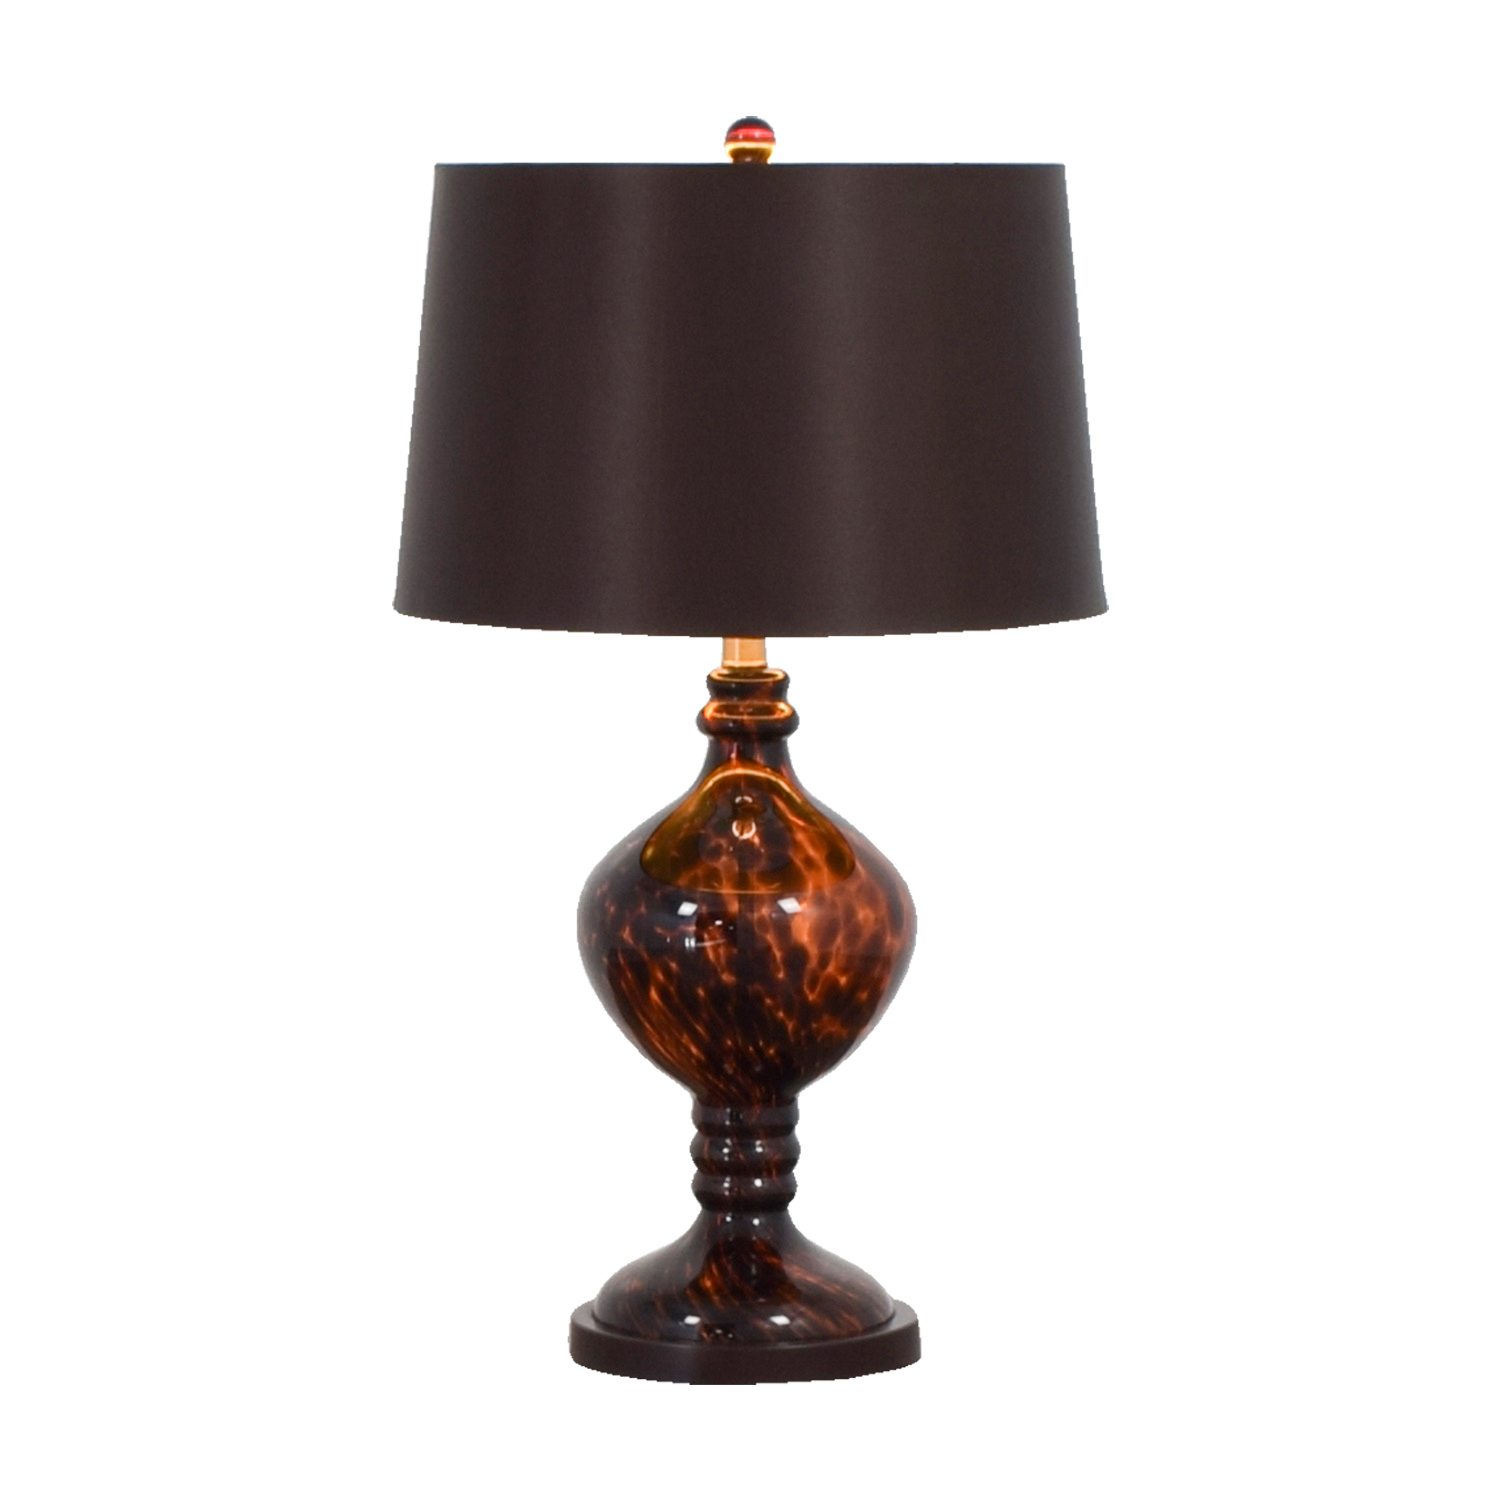 82 Off Pier 1 Imports Amber Table Lamp Decor